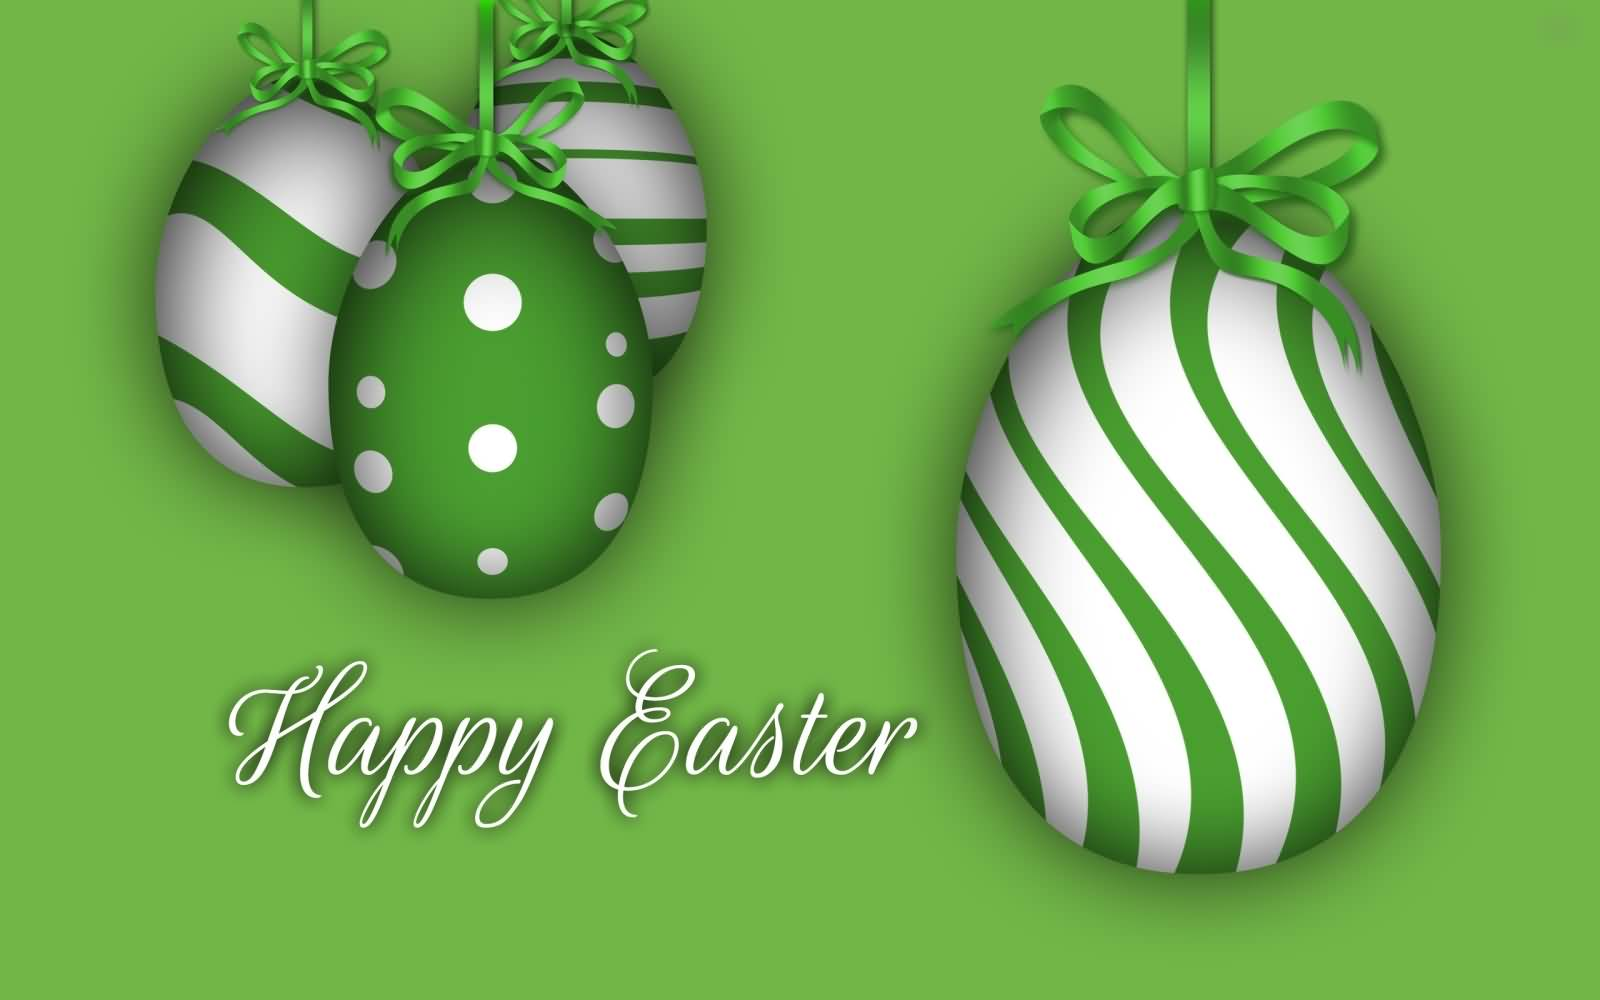 Happy Easter Green And Silver Eggs Picture